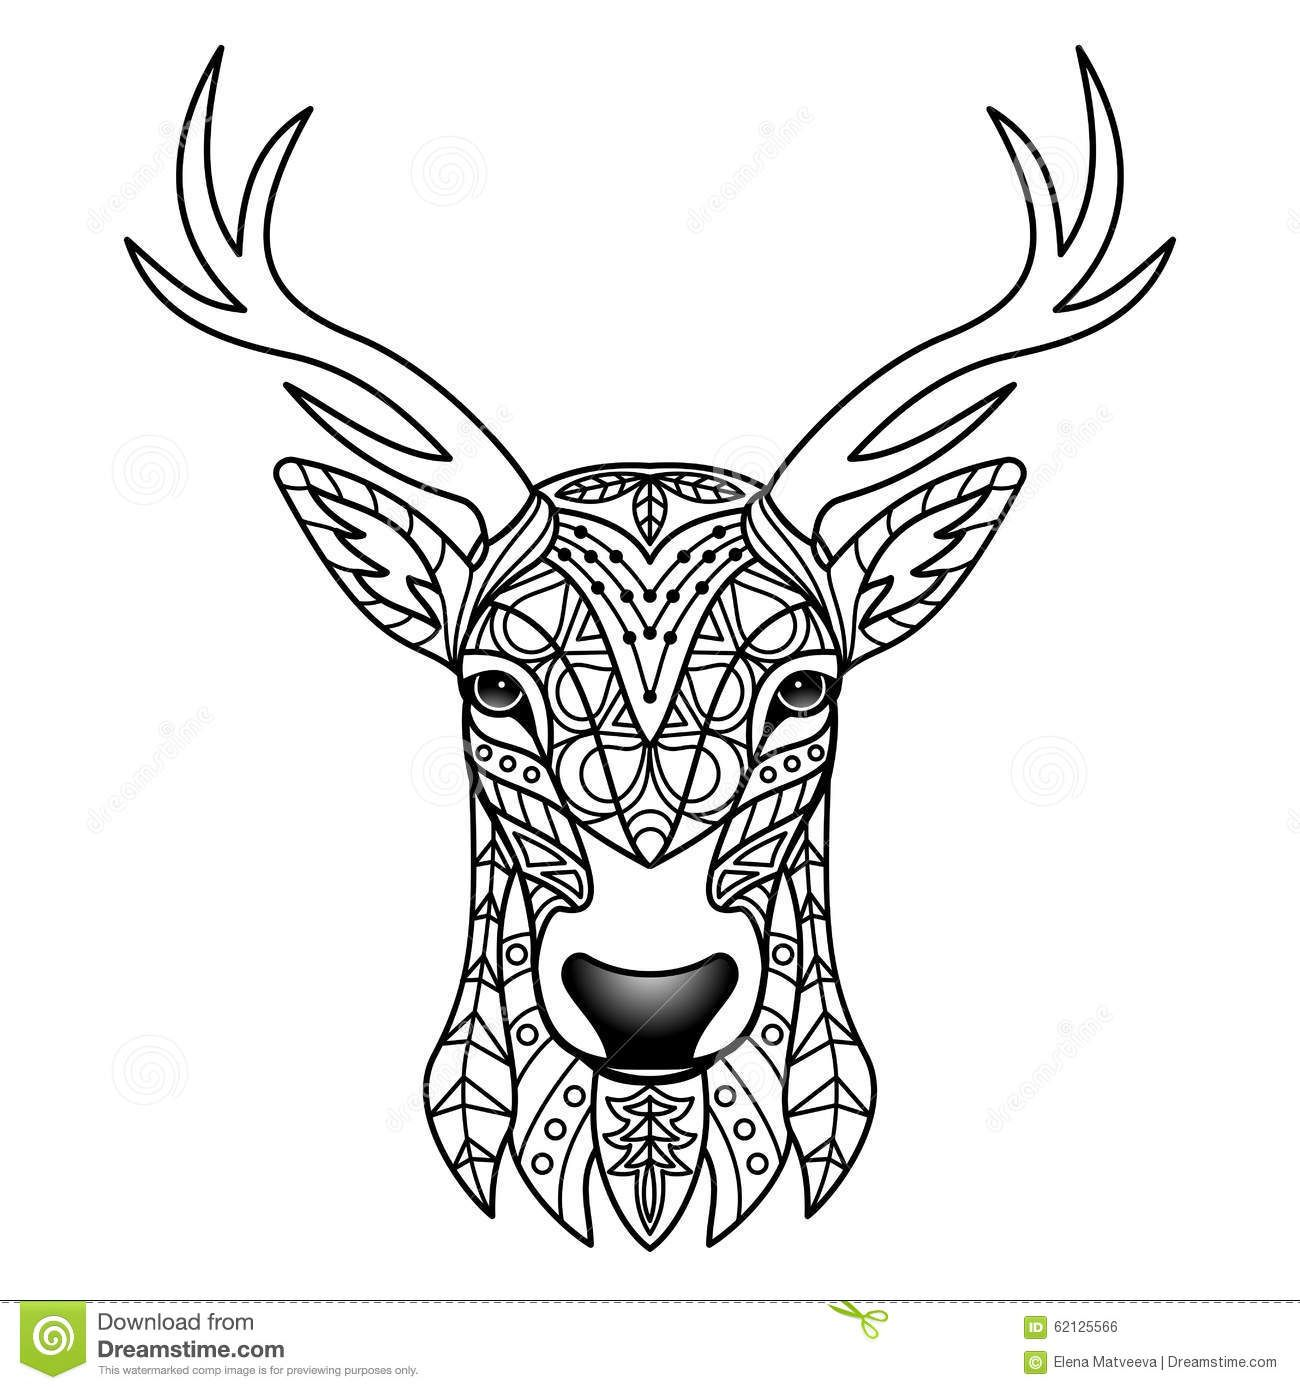 Black and white deer designs google search longboard ideas black and white deer designs google search buycottarizona Images